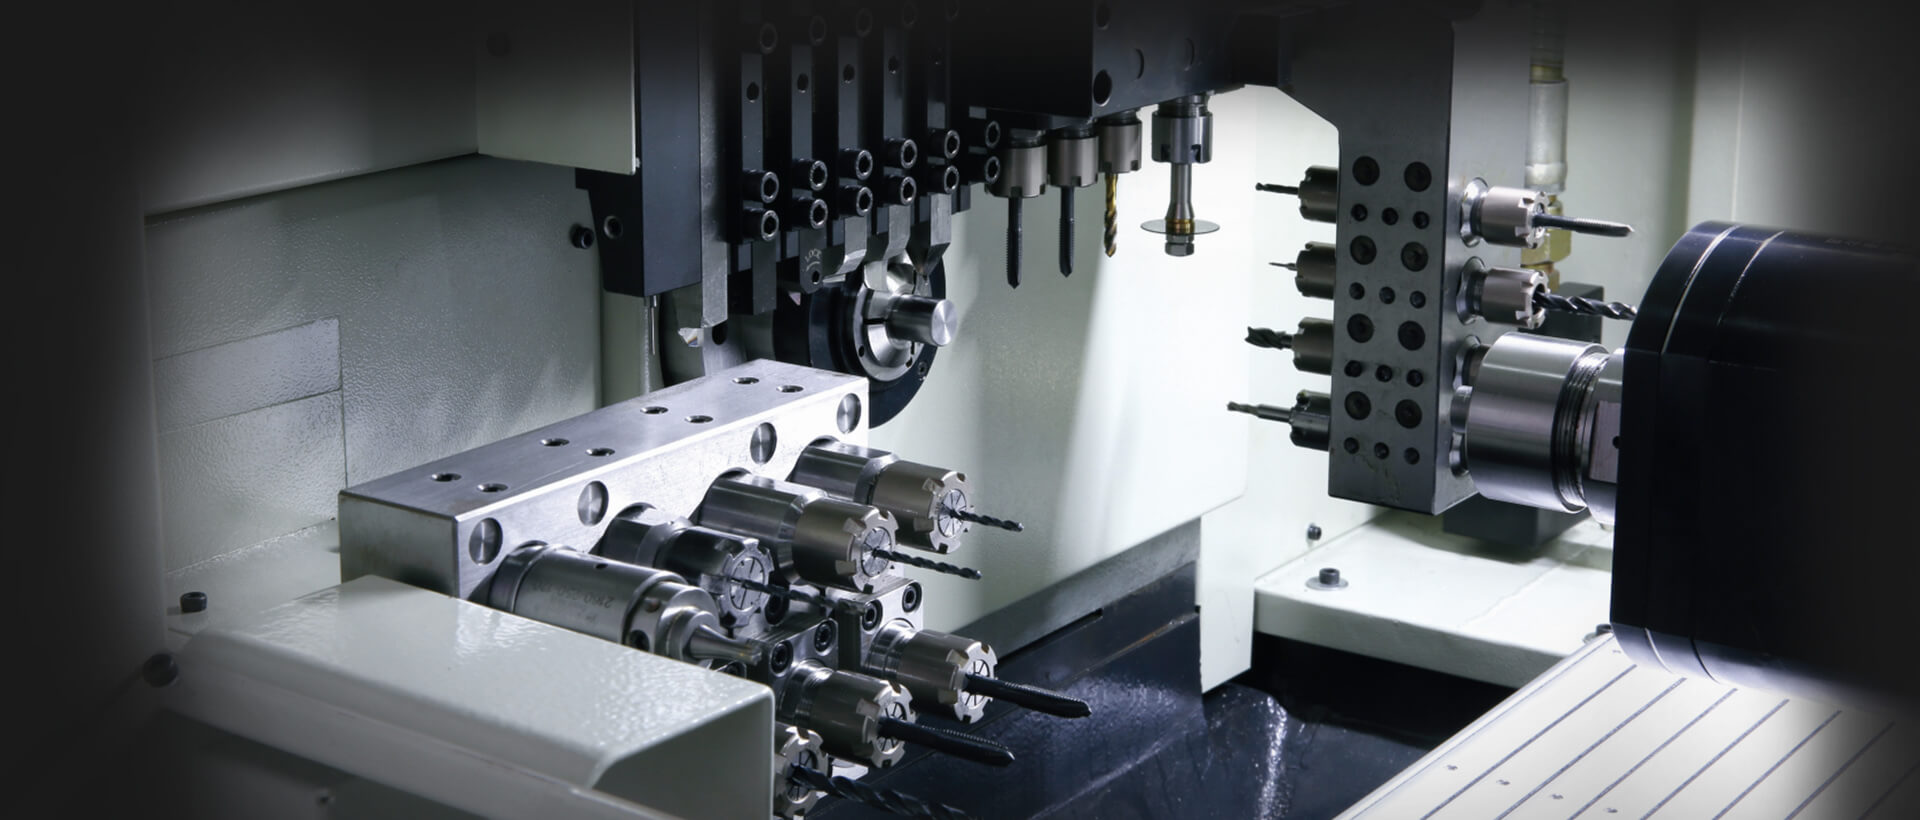 6 axis, dual spindles